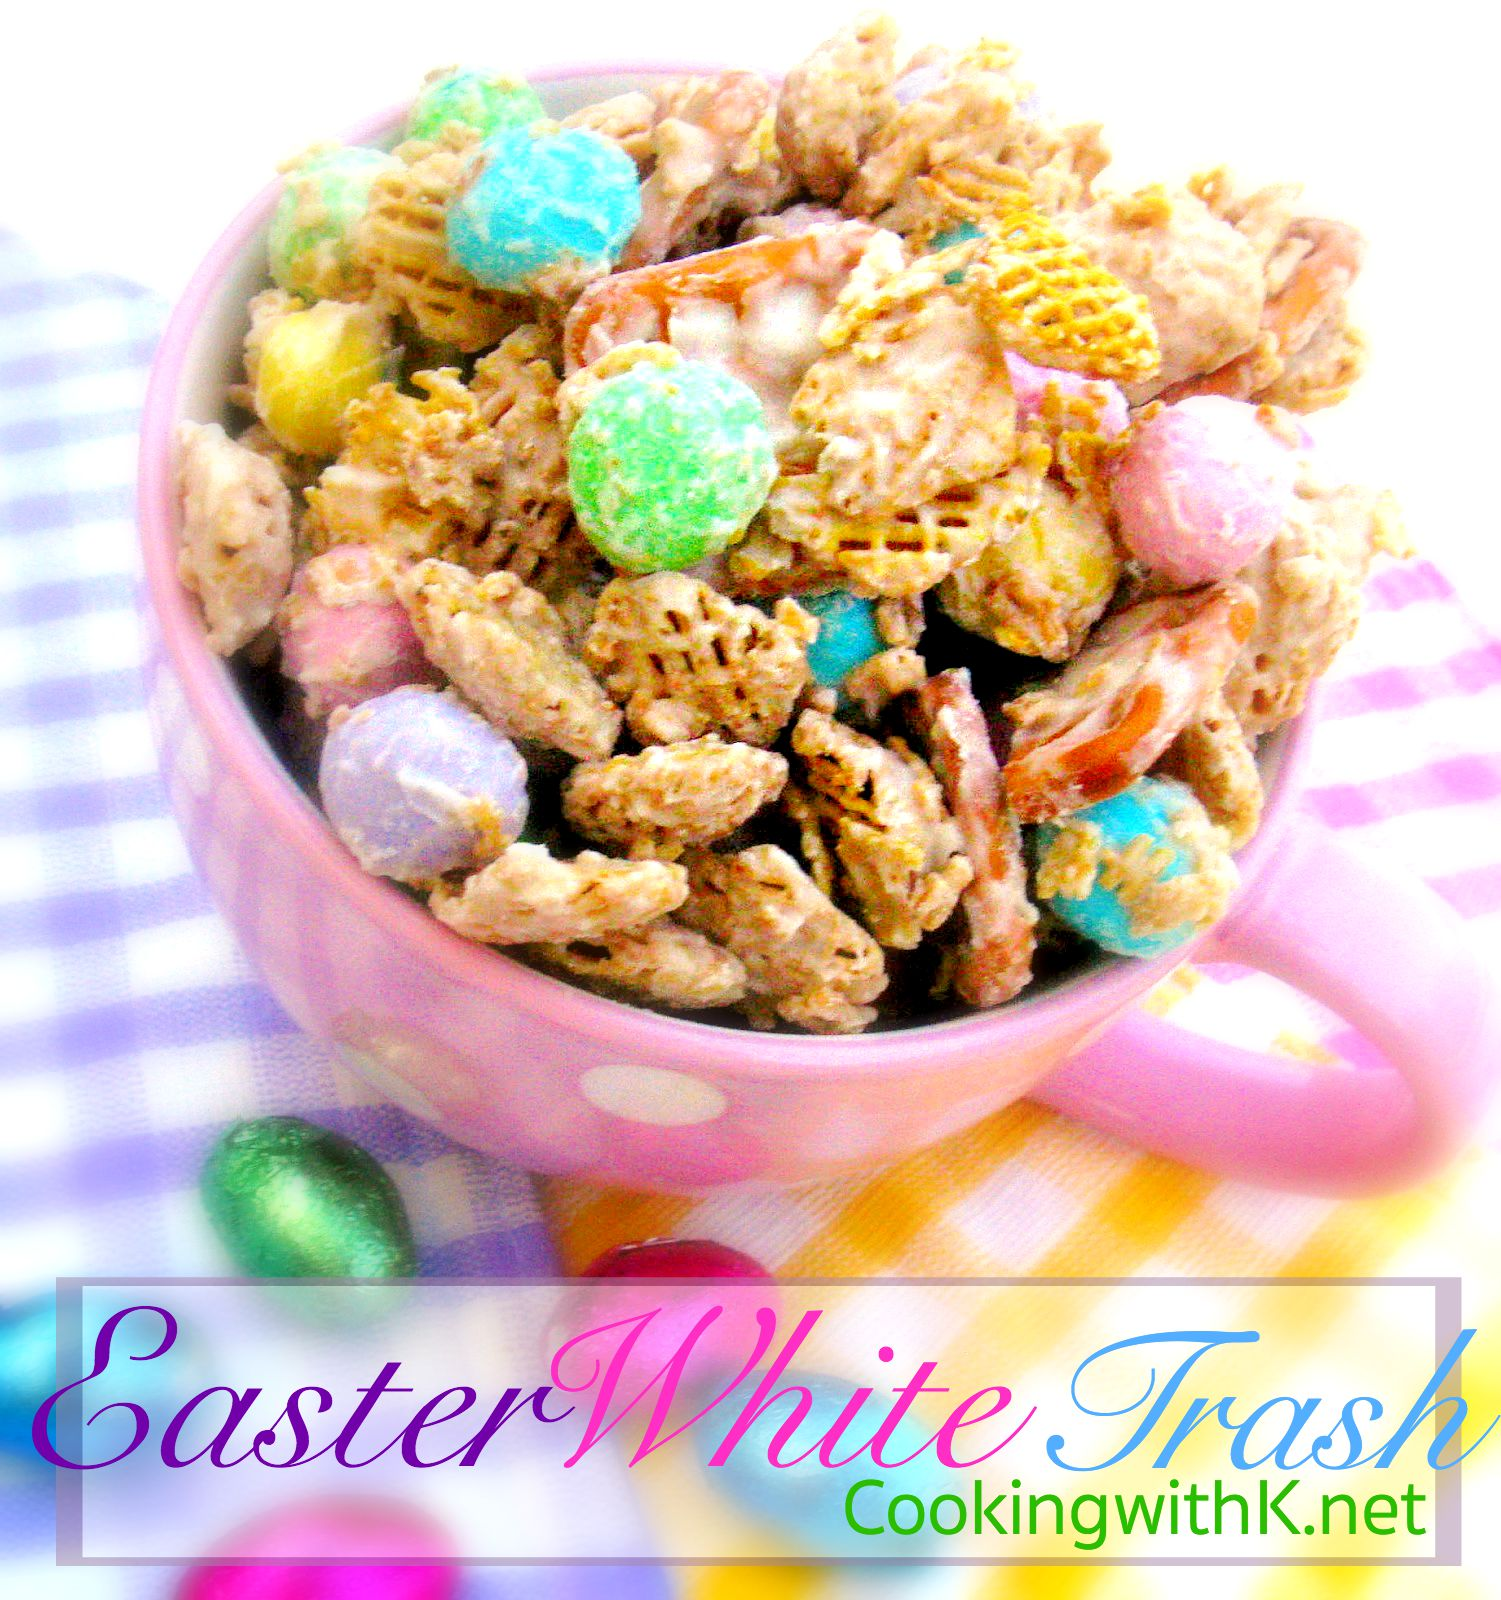 Cooking with k easter white trash and cute gift bags the basic recipe for the trash is the same each time i just change the color of the mms for what holiday we are celebrating for easter i use the cute negle Images